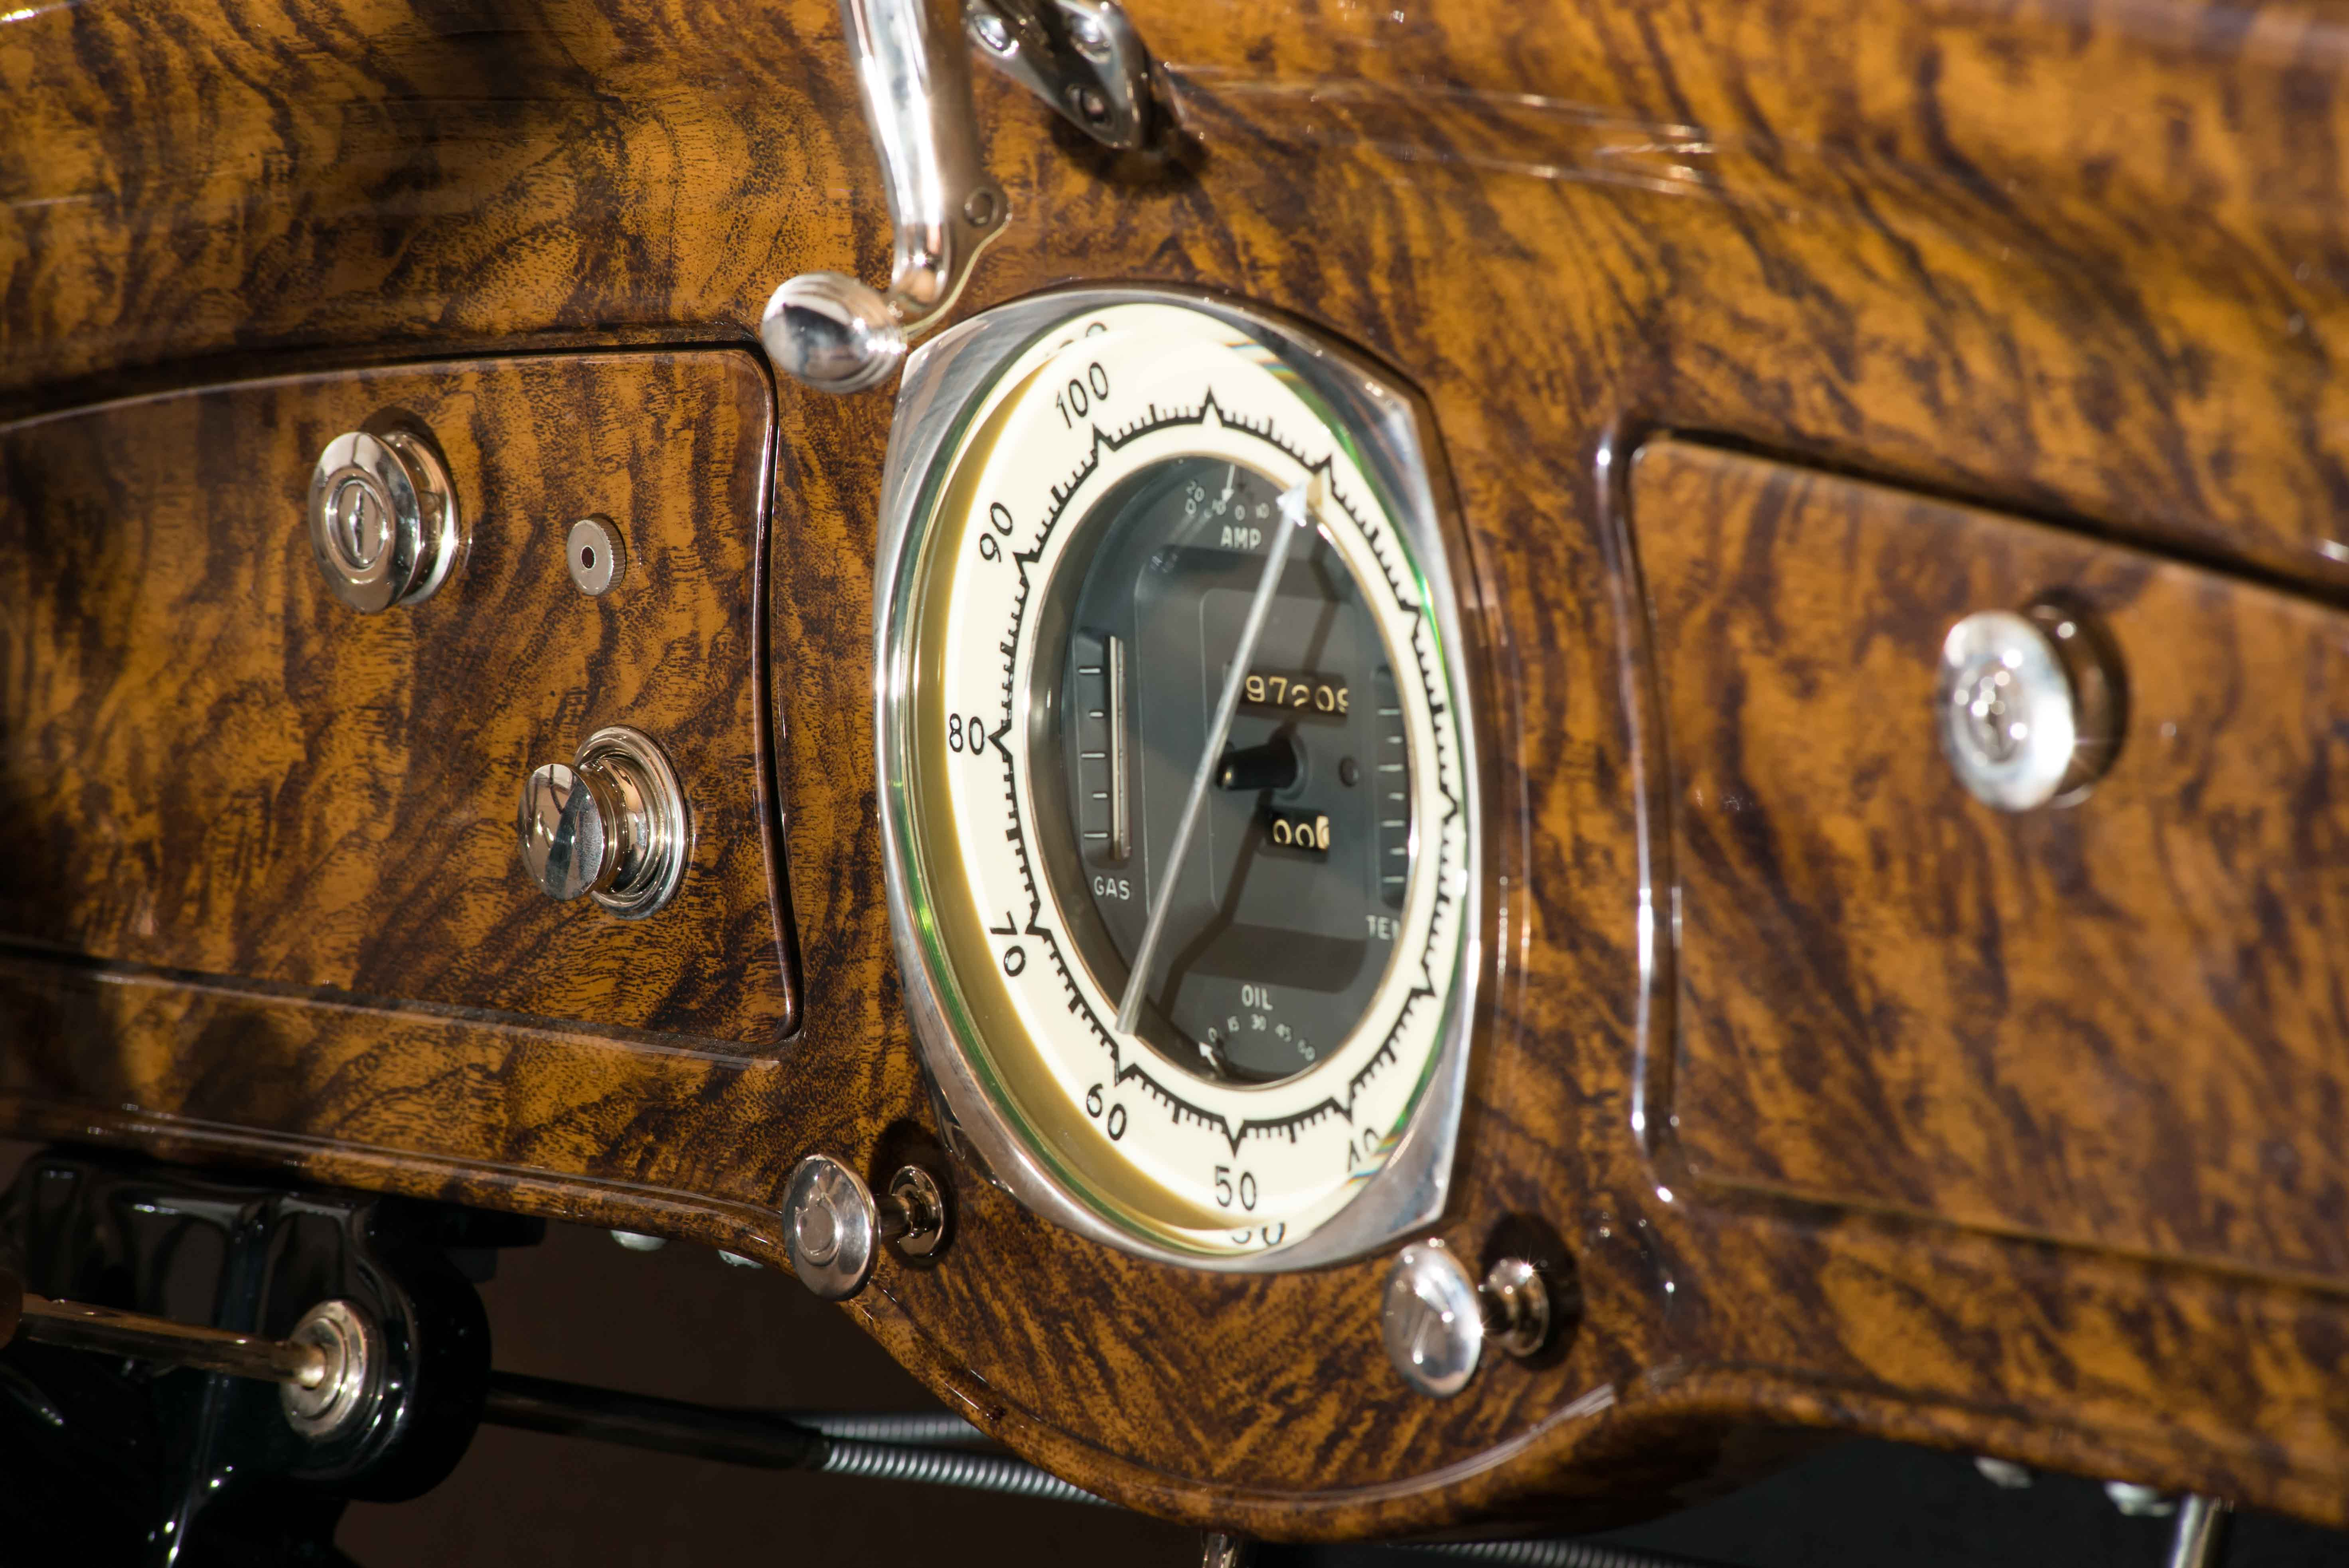 1932 Graham Blue Streak speedometer